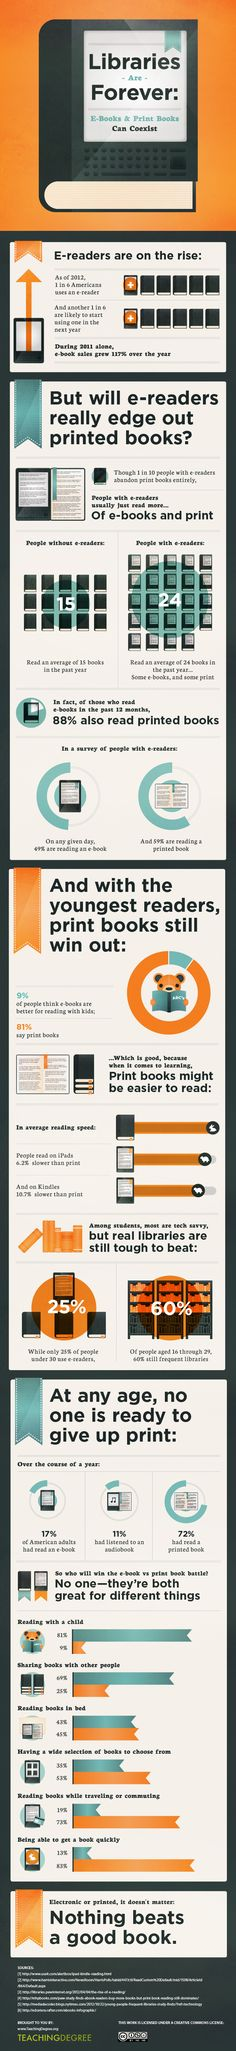 Libraries are forever – infographic | Ebook Friendly